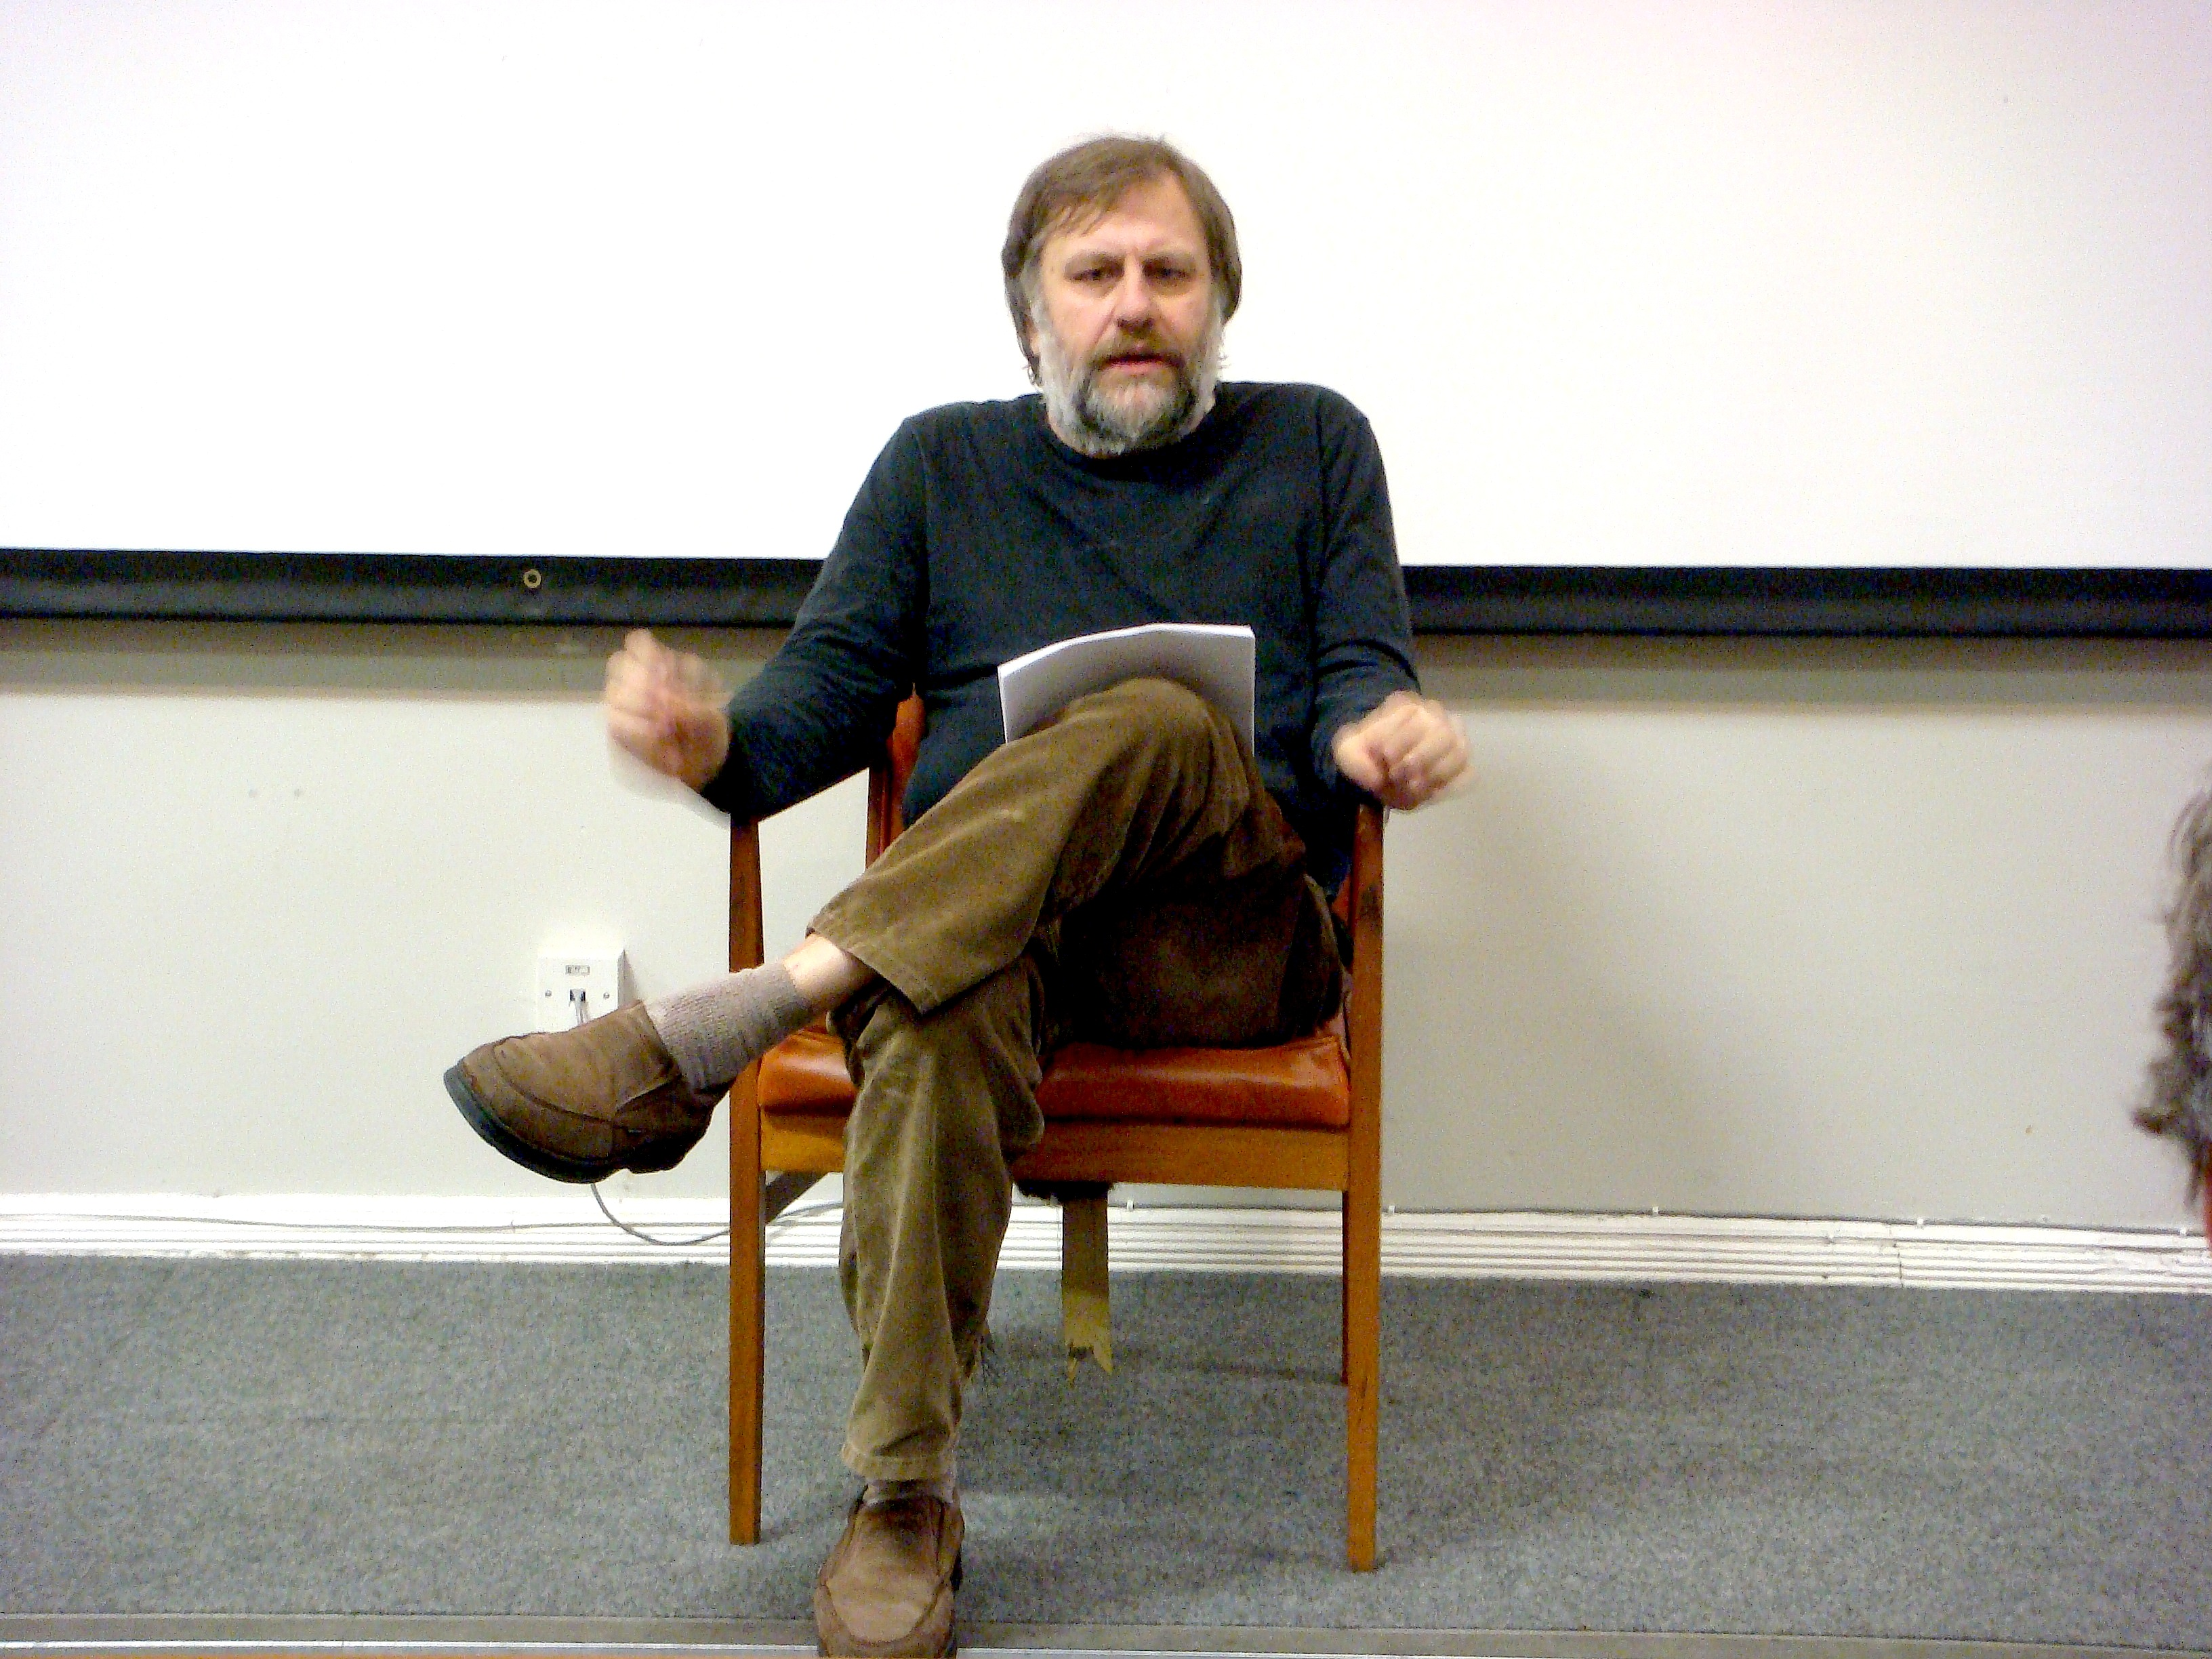 Slavoj Zizek in Liverpool - by Andy Miah, 17 March 2008 (Slavoj_Zizek_in_Liverpool.jpg) (CC BY-SA 2.0 [https://creativecommons.org/licenses/by-sa/2.0/]), via Flickr